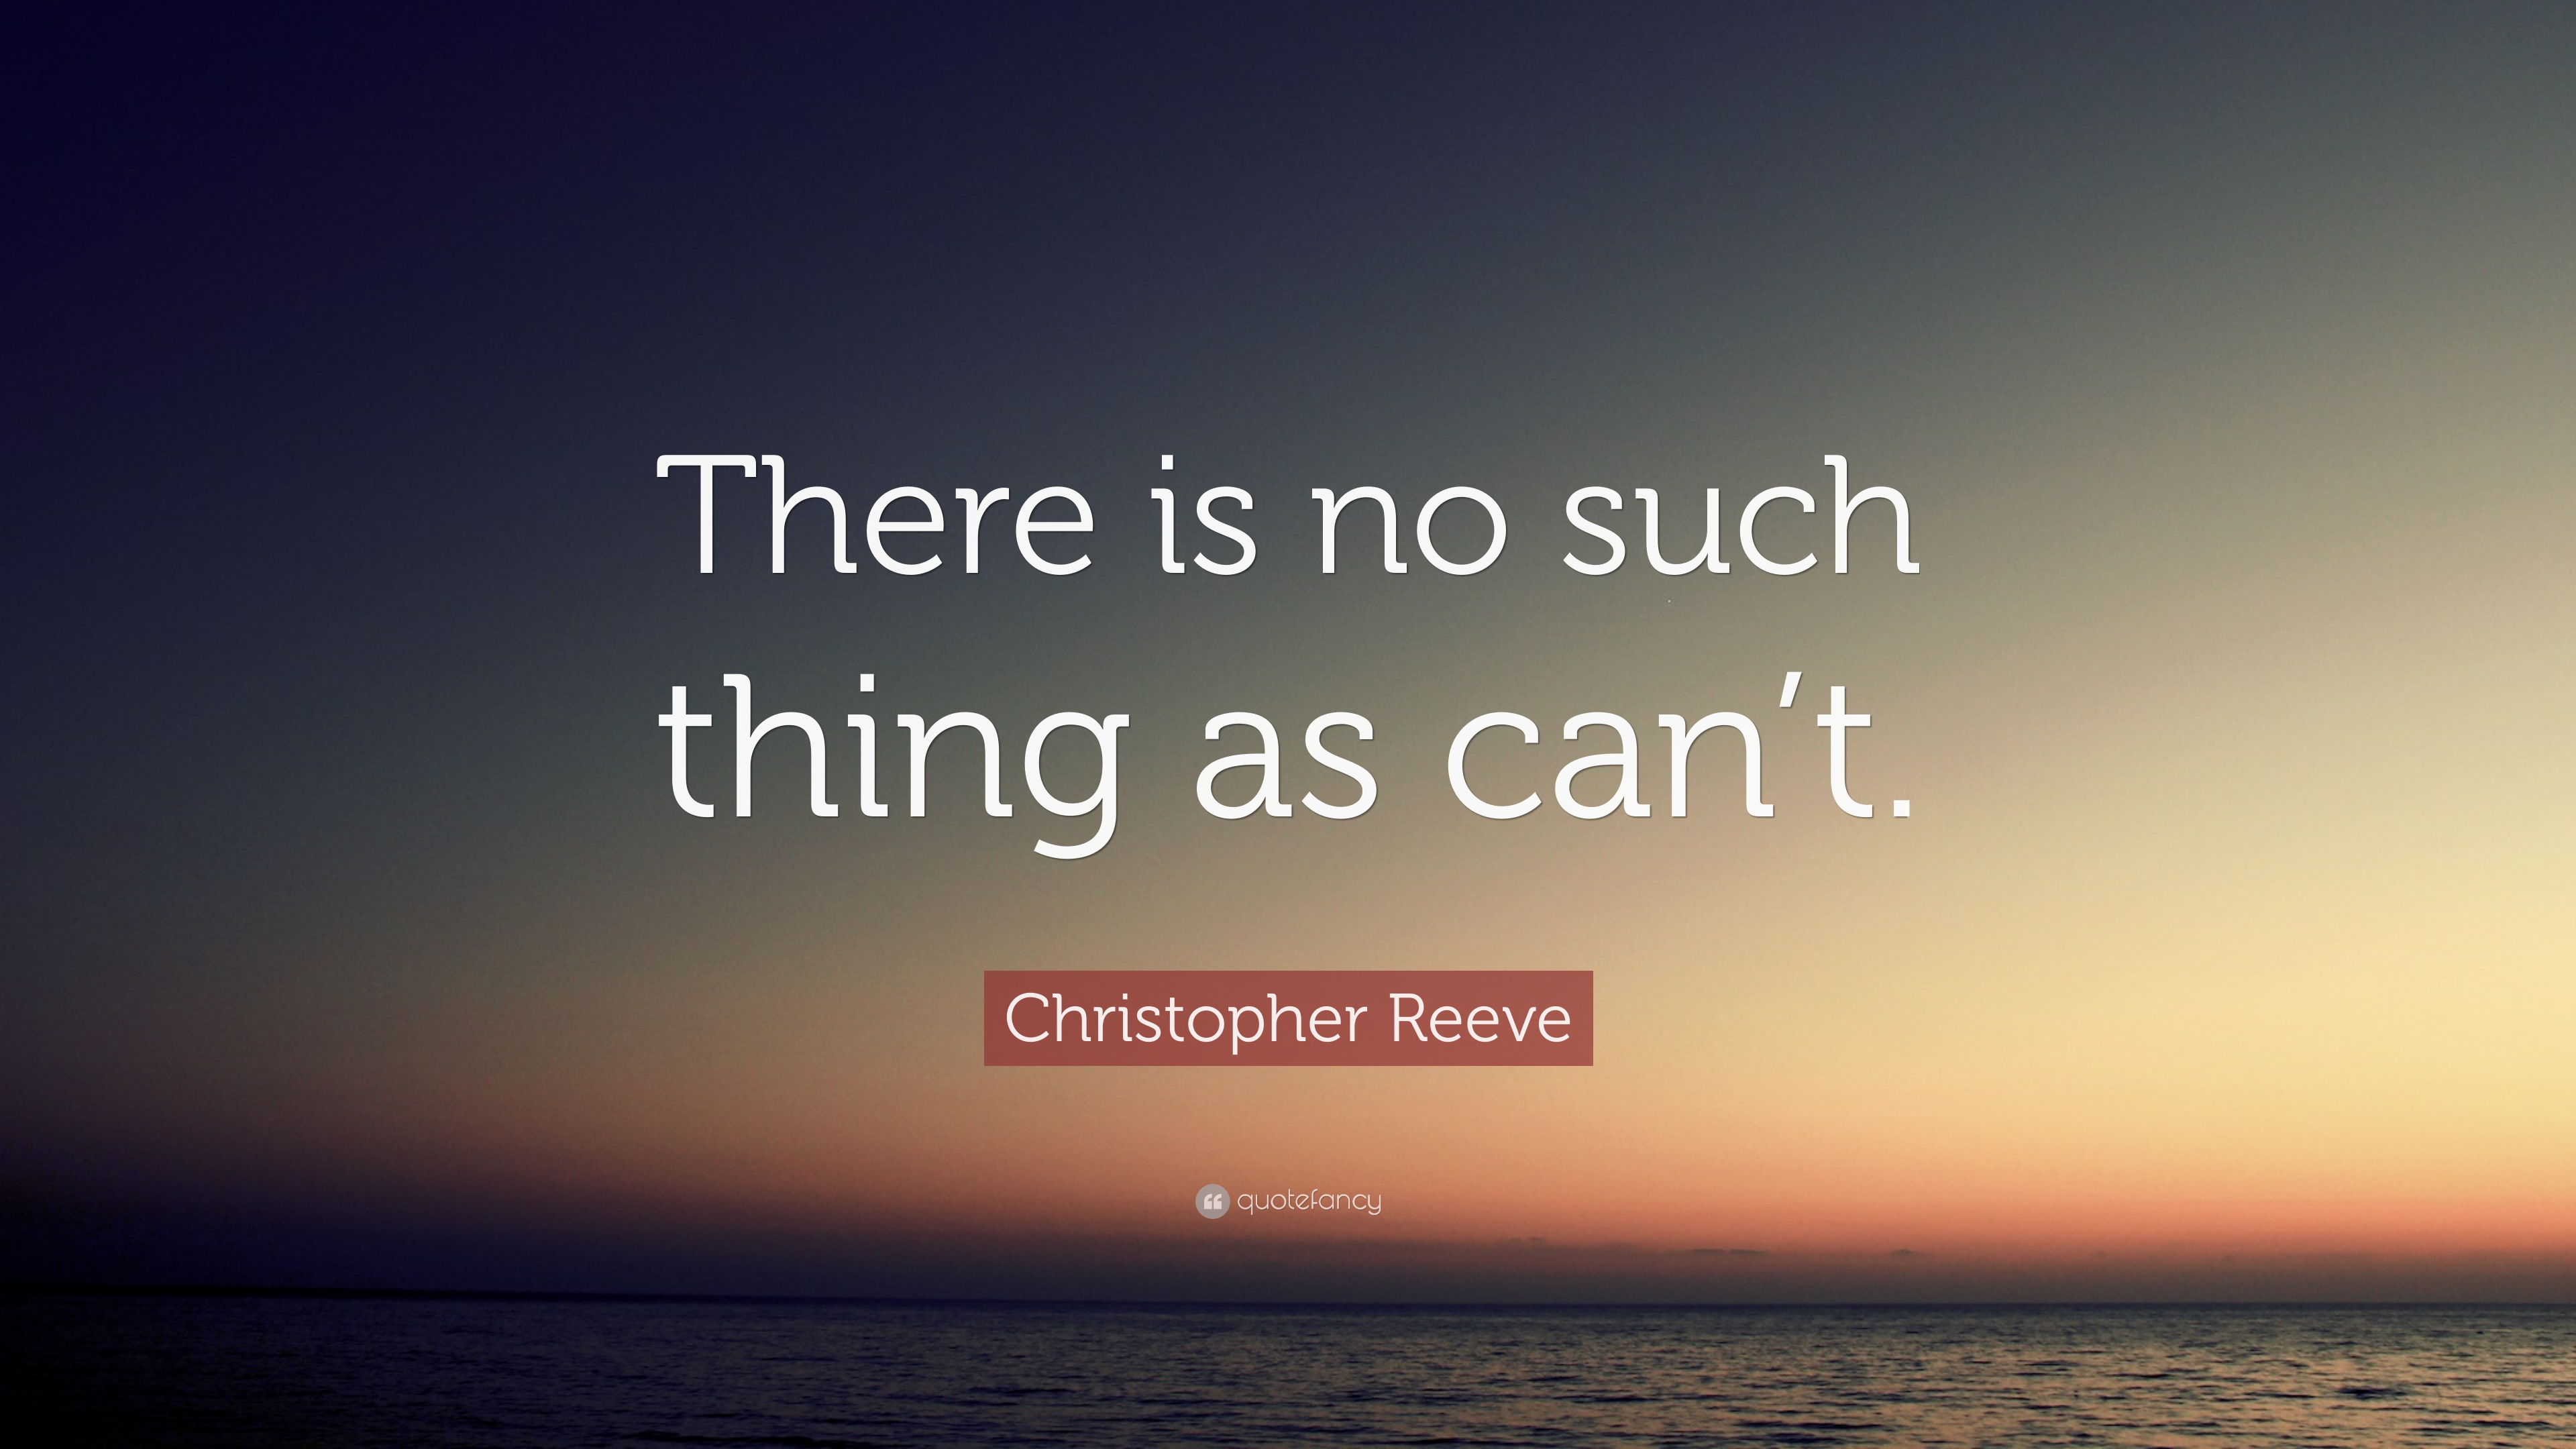 """Christopher Reeve Quote: """"There is no such thing as can't."""" (12 wallpapers ..."""